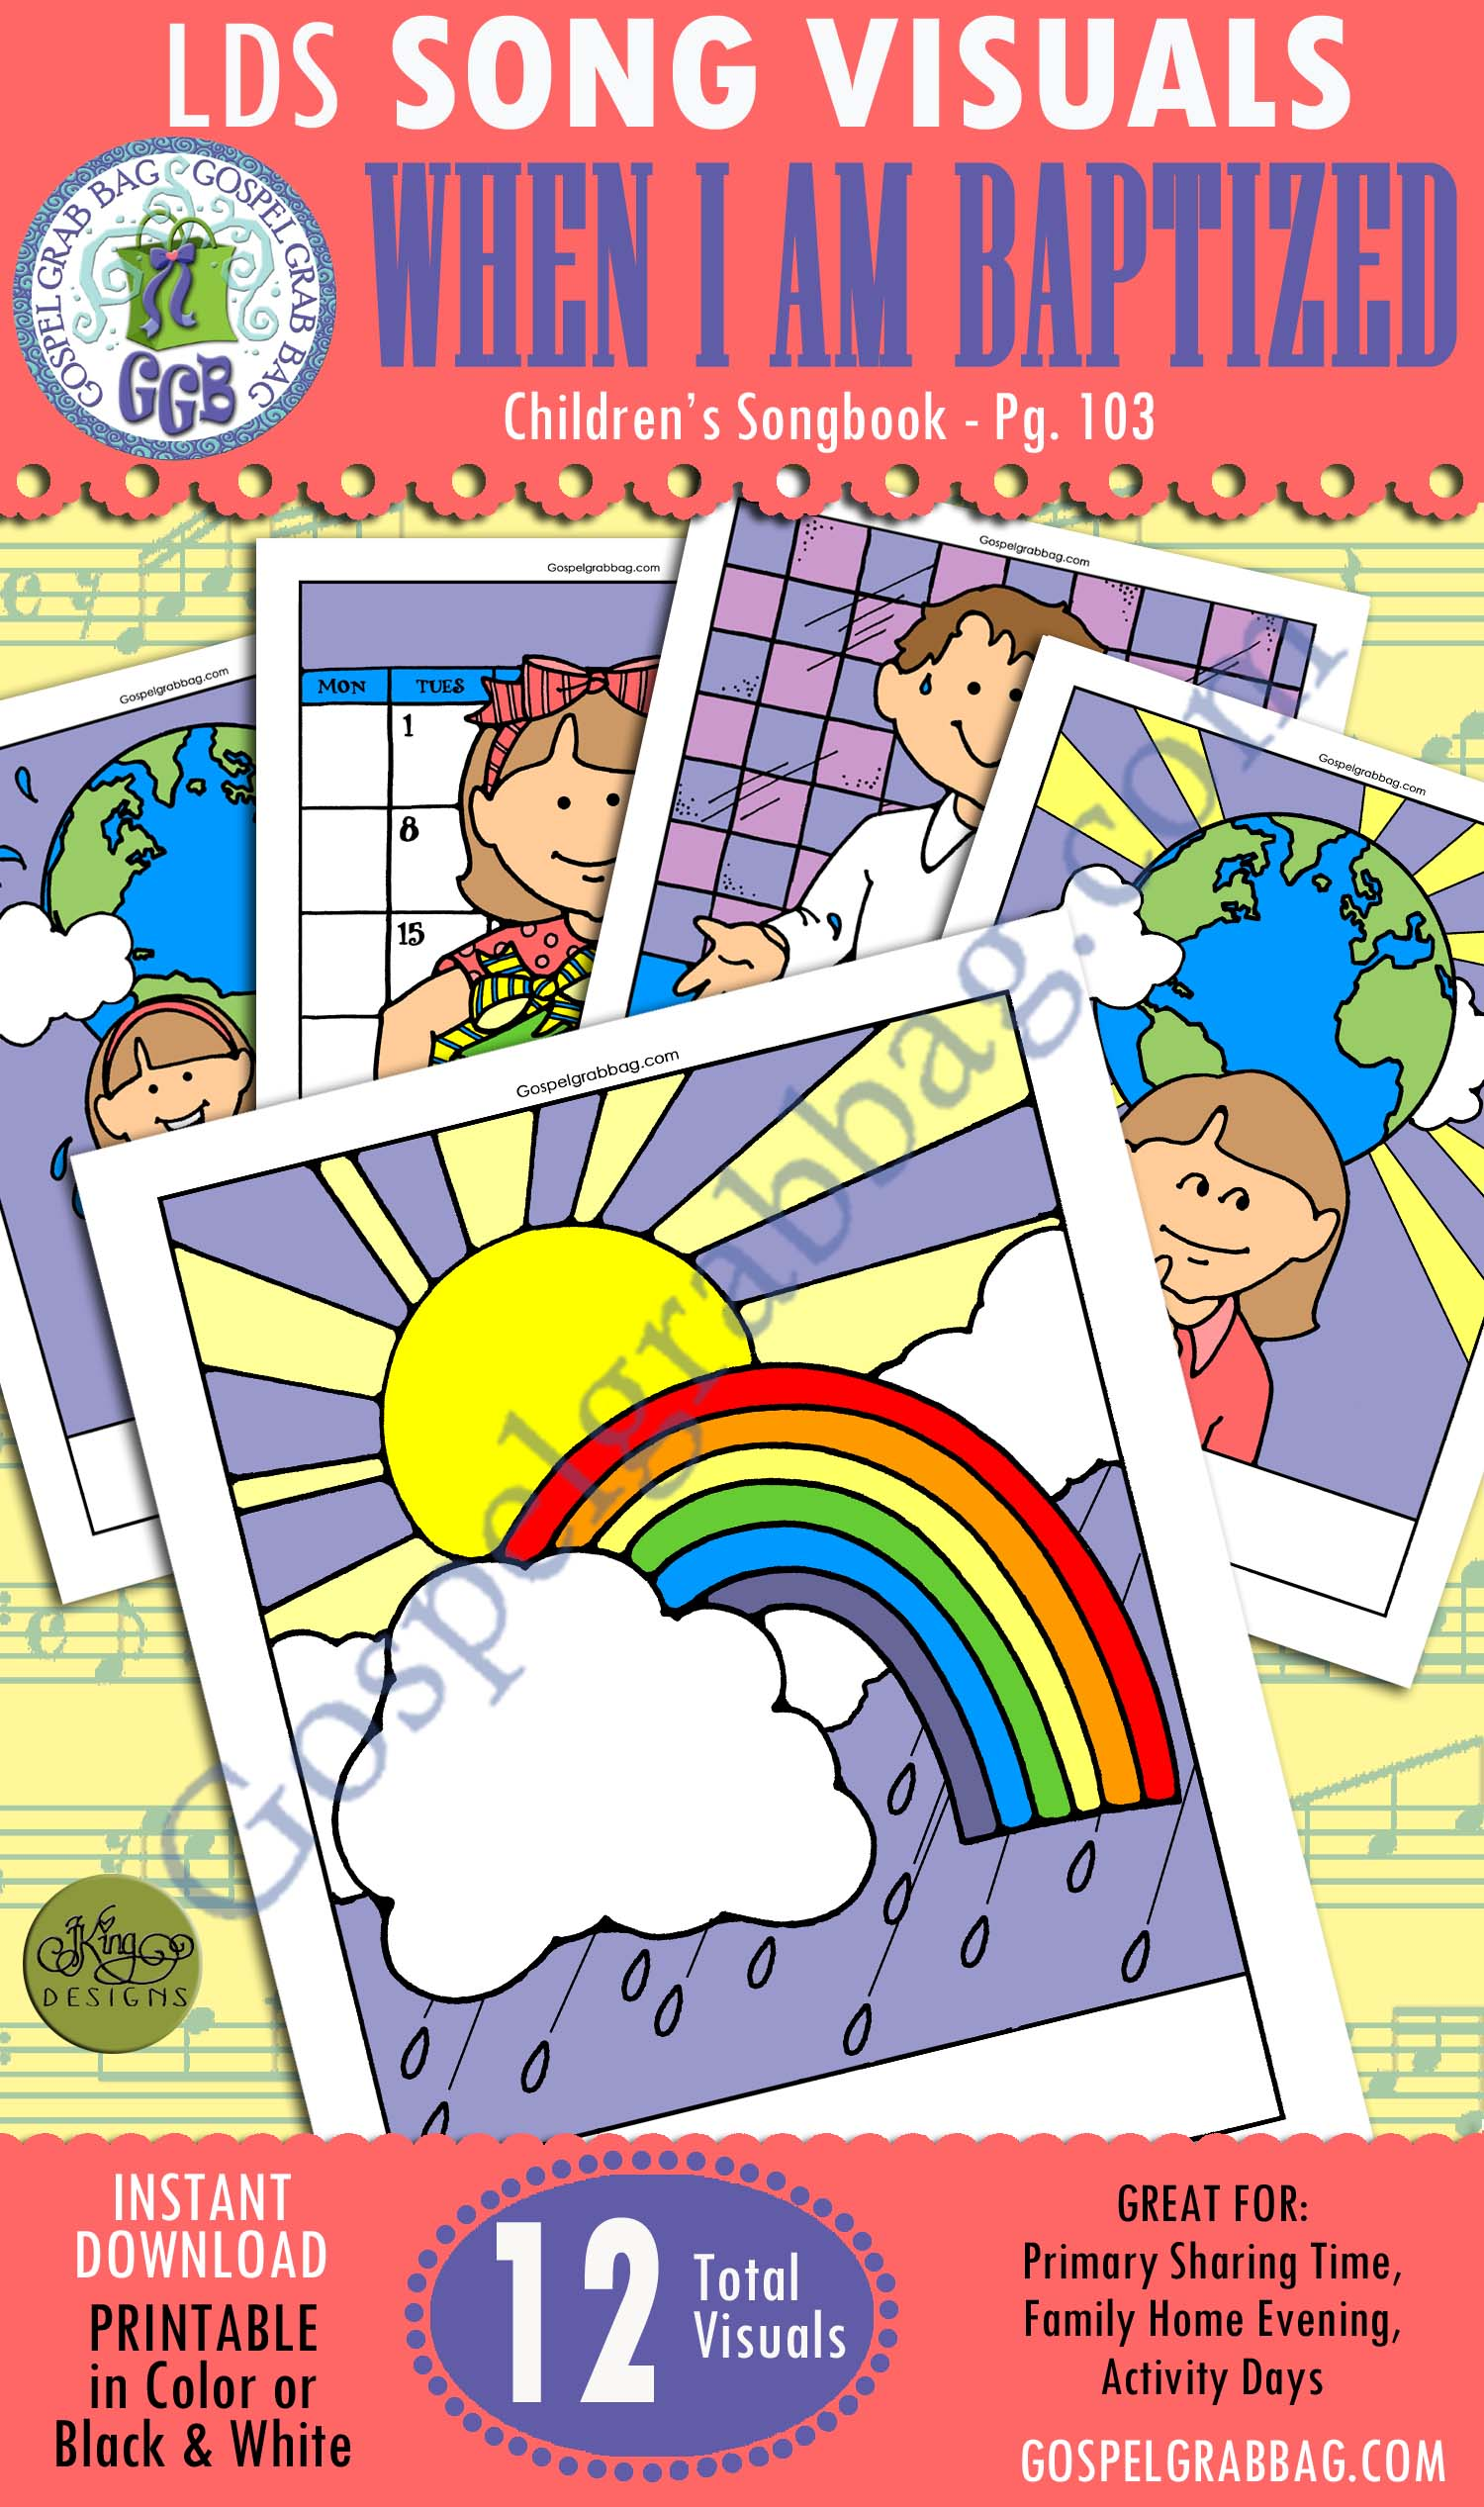 WHEN I AM BAPTIZED: Primary Song Visuals to print in color, ready-to-use – Illustrated by Jennette Guymon-King, Author, Mary H. Ross, music leaders use visuals – practice songs - Singing Time Visuals to DOWNLOAD, BAPTISM, GospelGrabBag.com